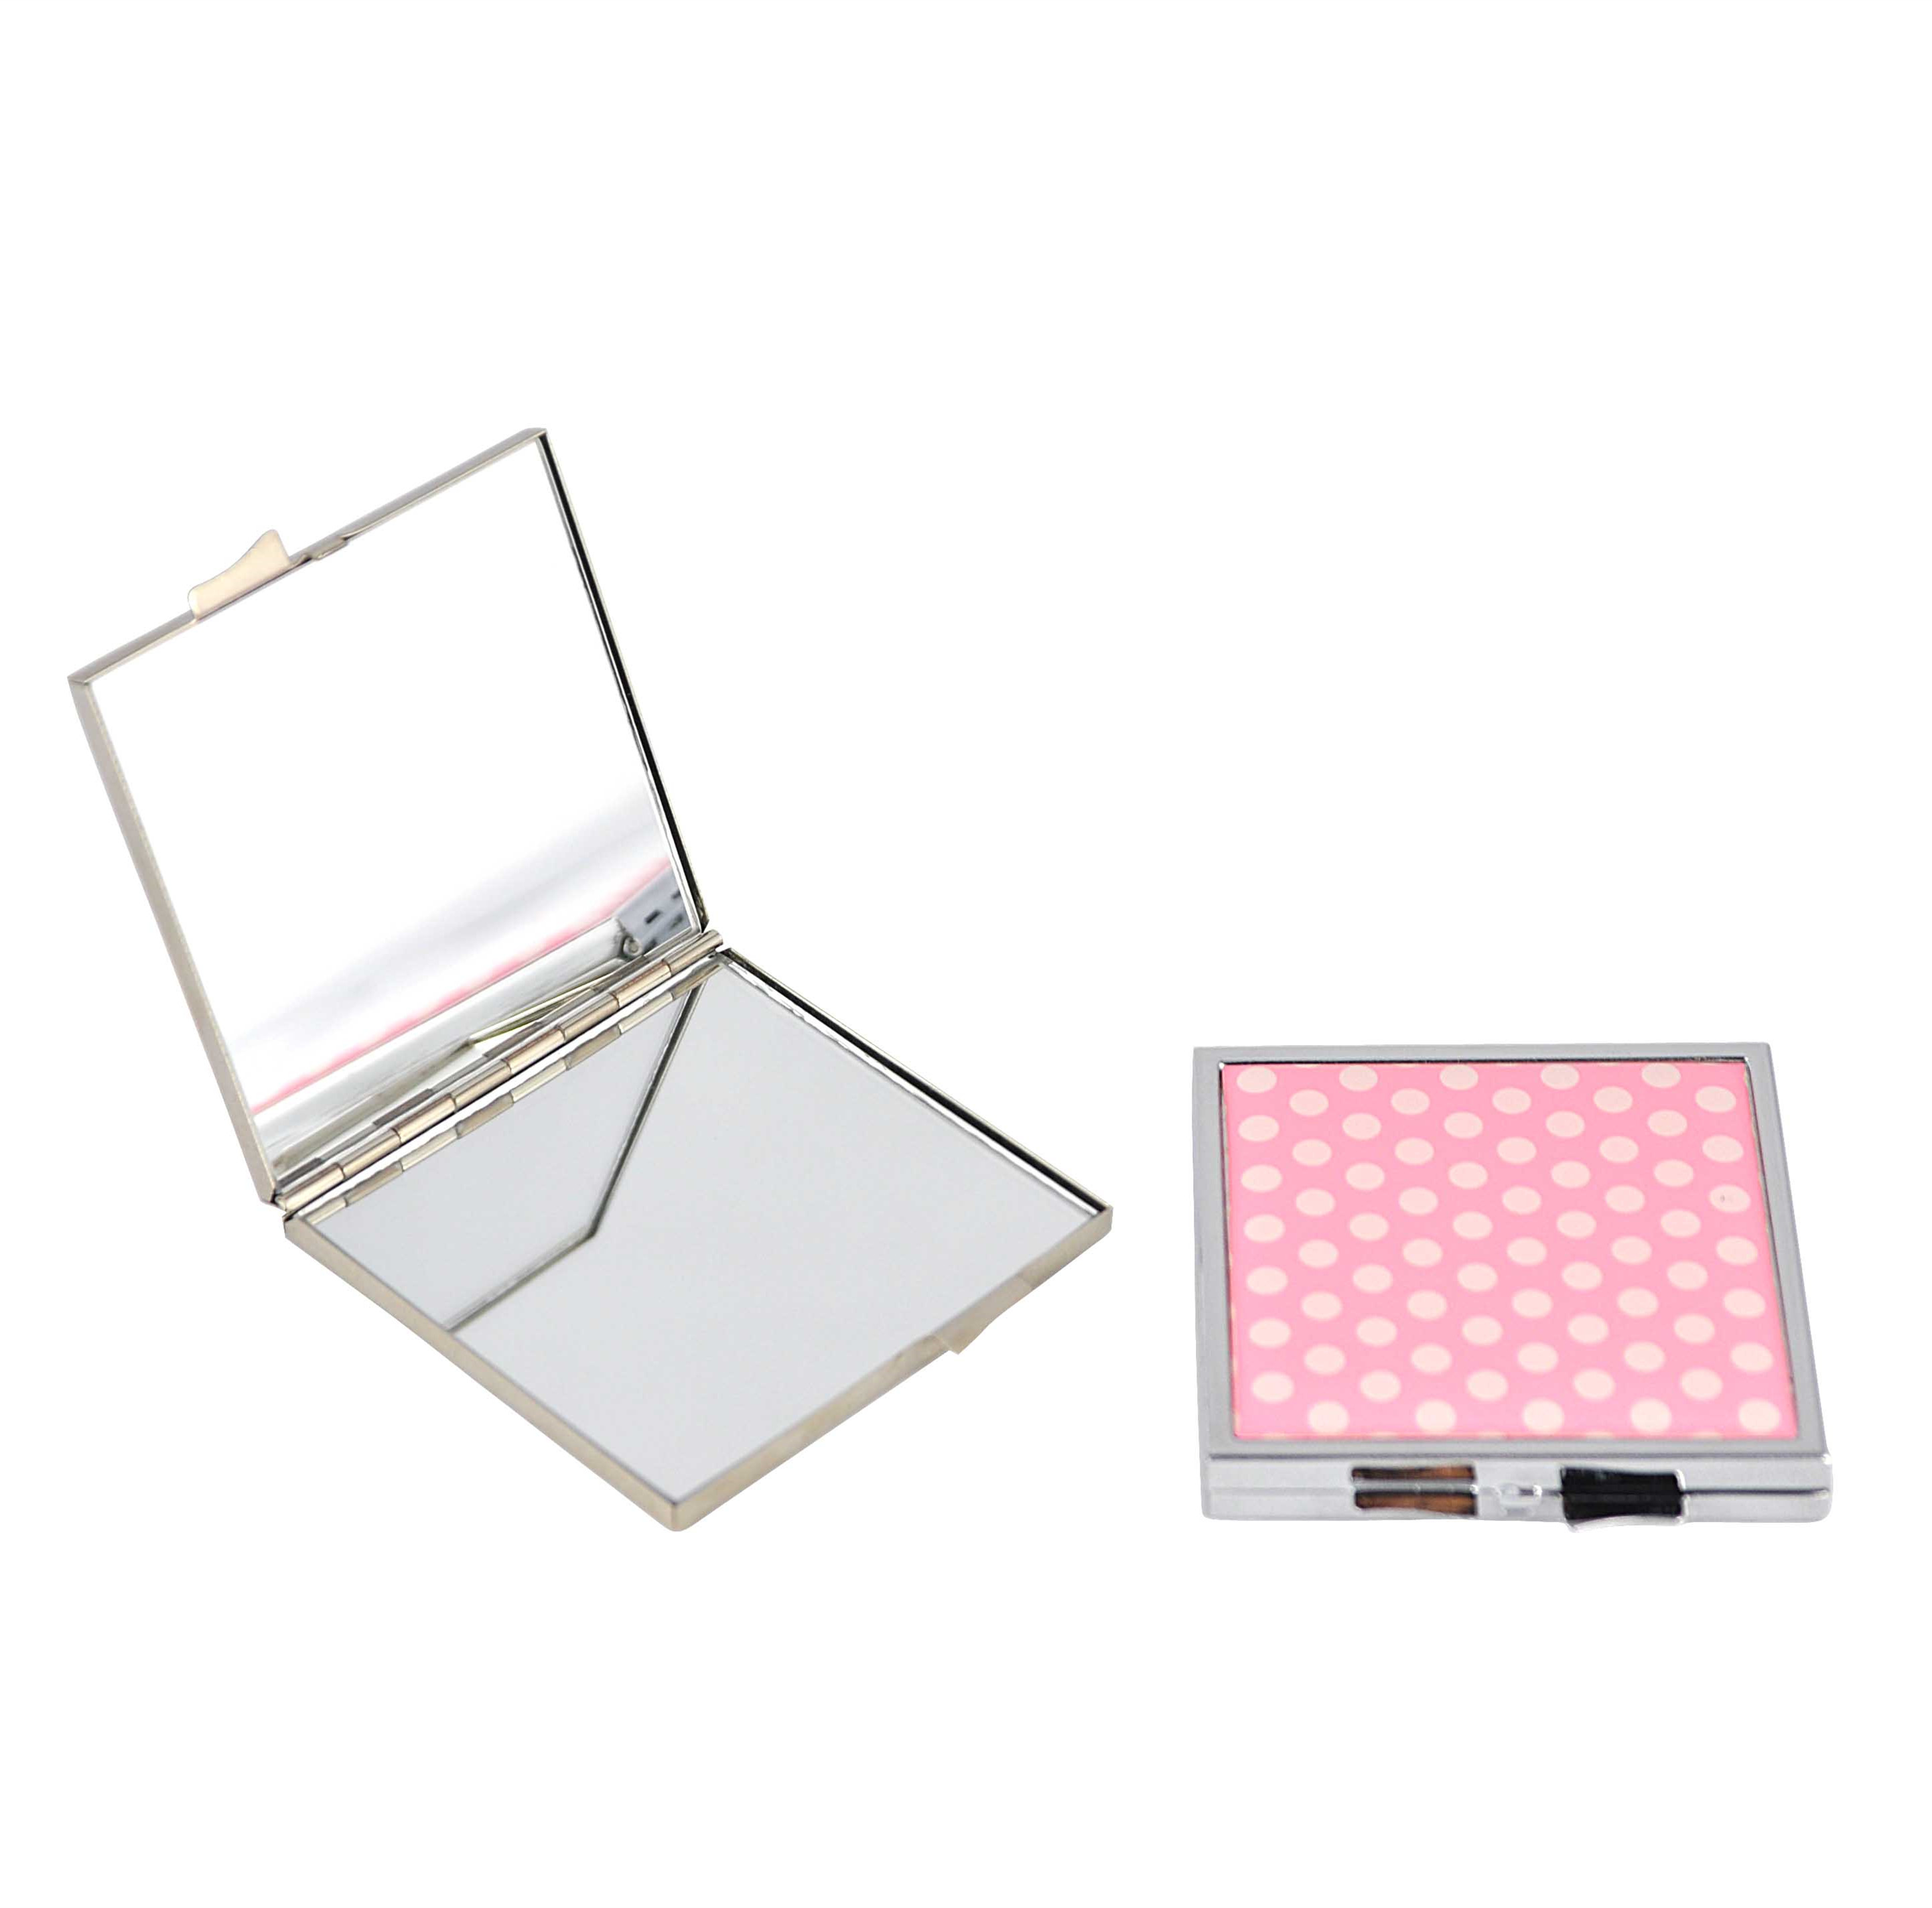 square shaped makeup mirror with printed logo gift for friend